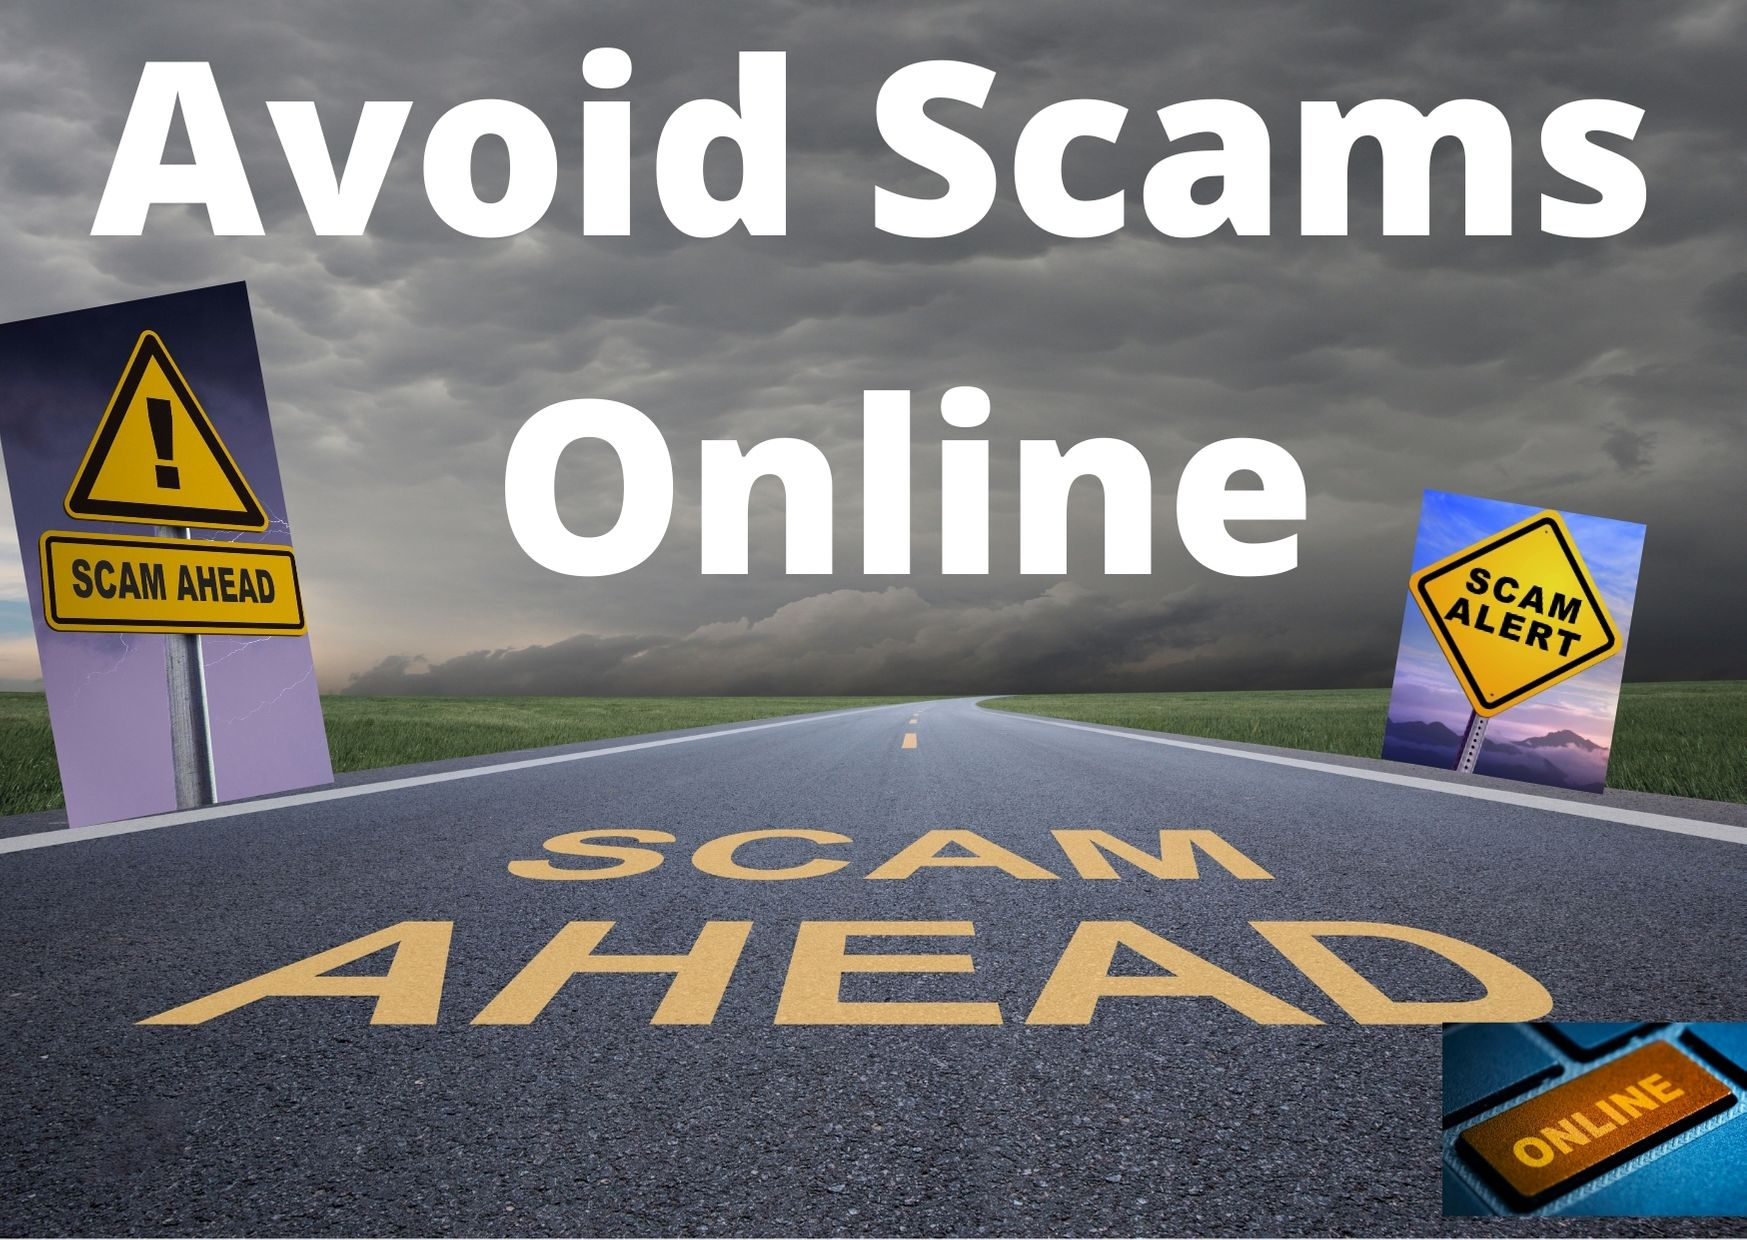 Avoid Scams Online